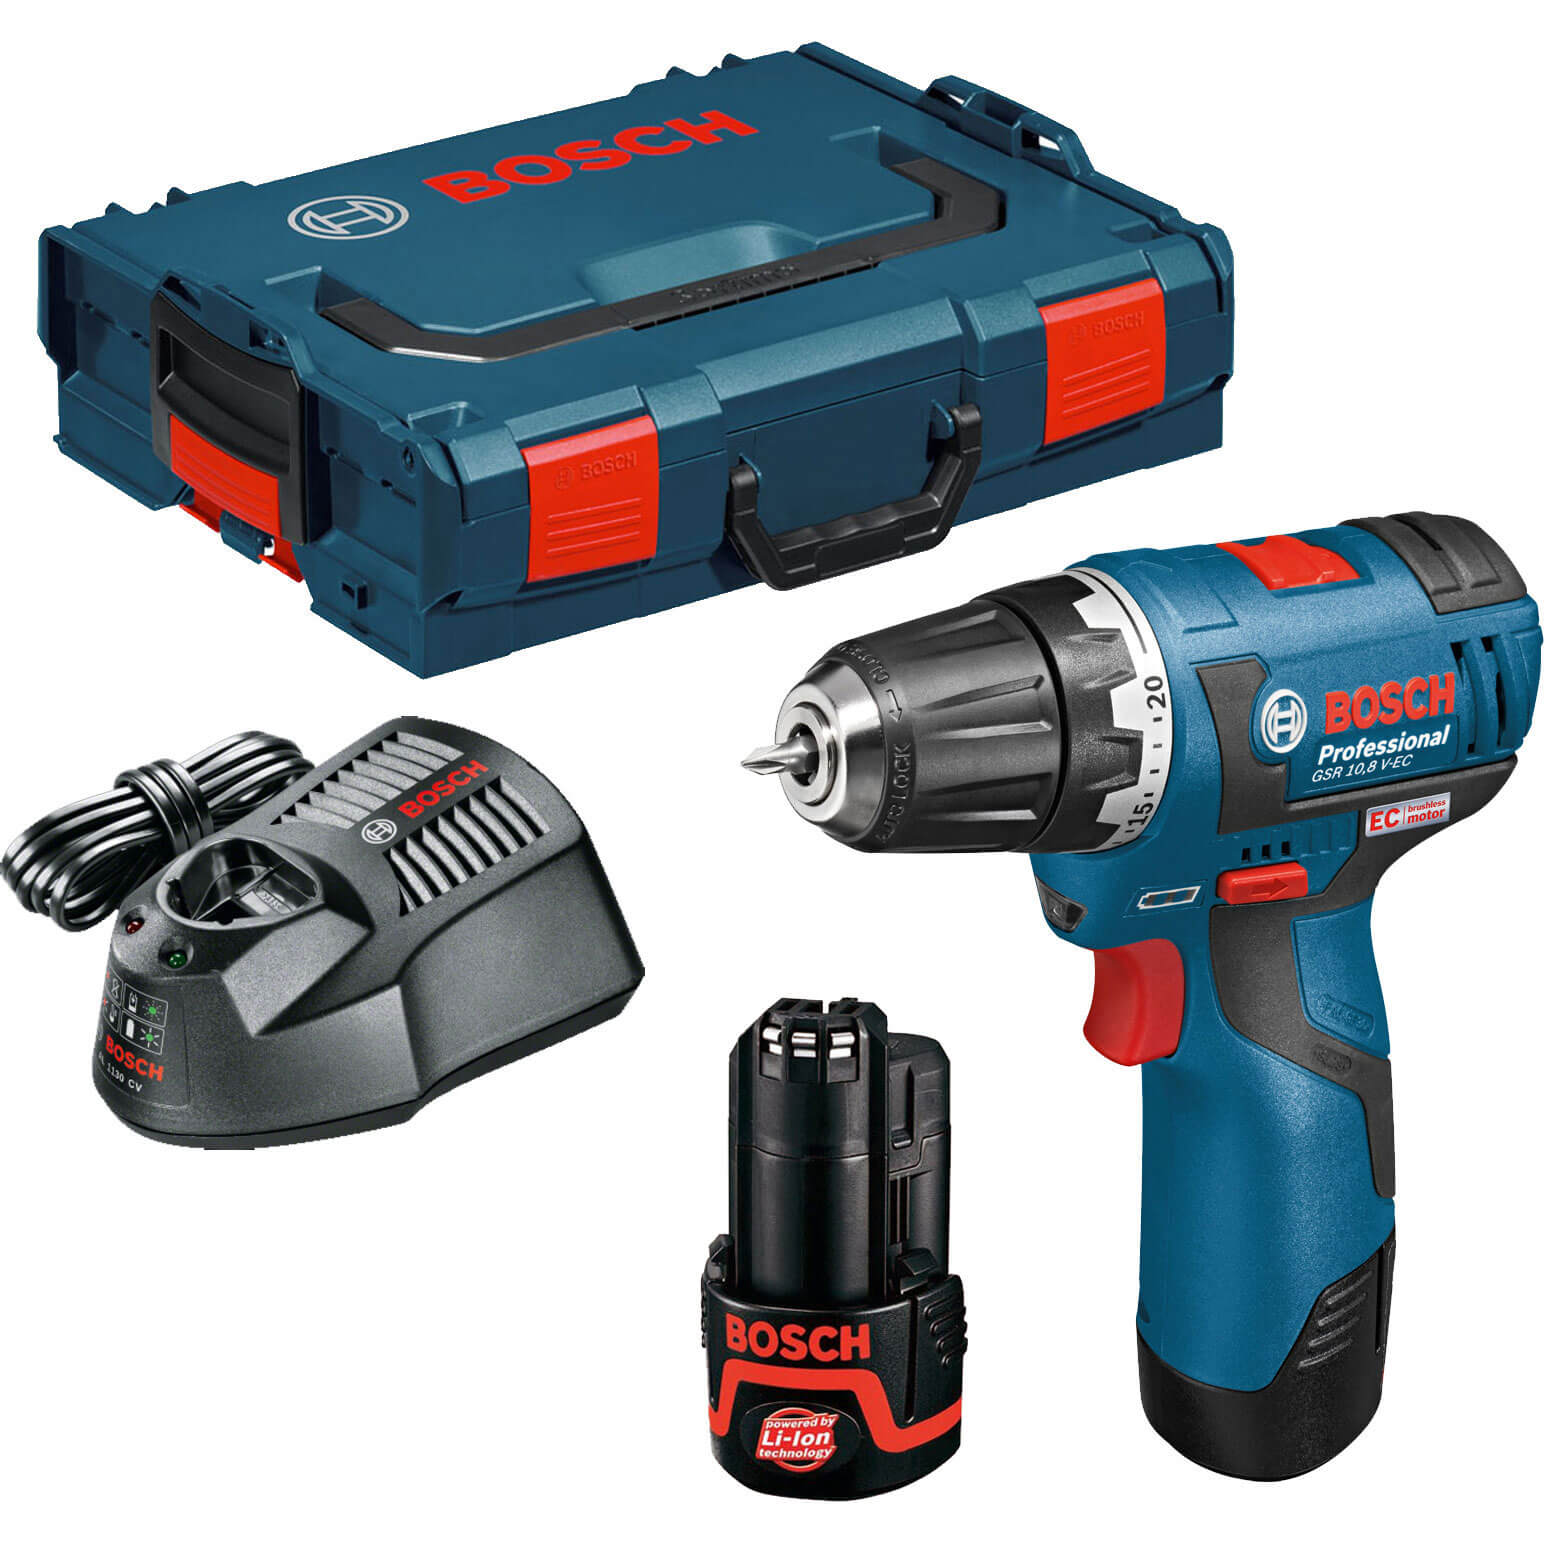 Bosch GSR 10.8 V-EC 10.8v Cordless 2 Speed Brushless Drill Driver with L Boxx & 2 Lithium Ion Batteries 2ah